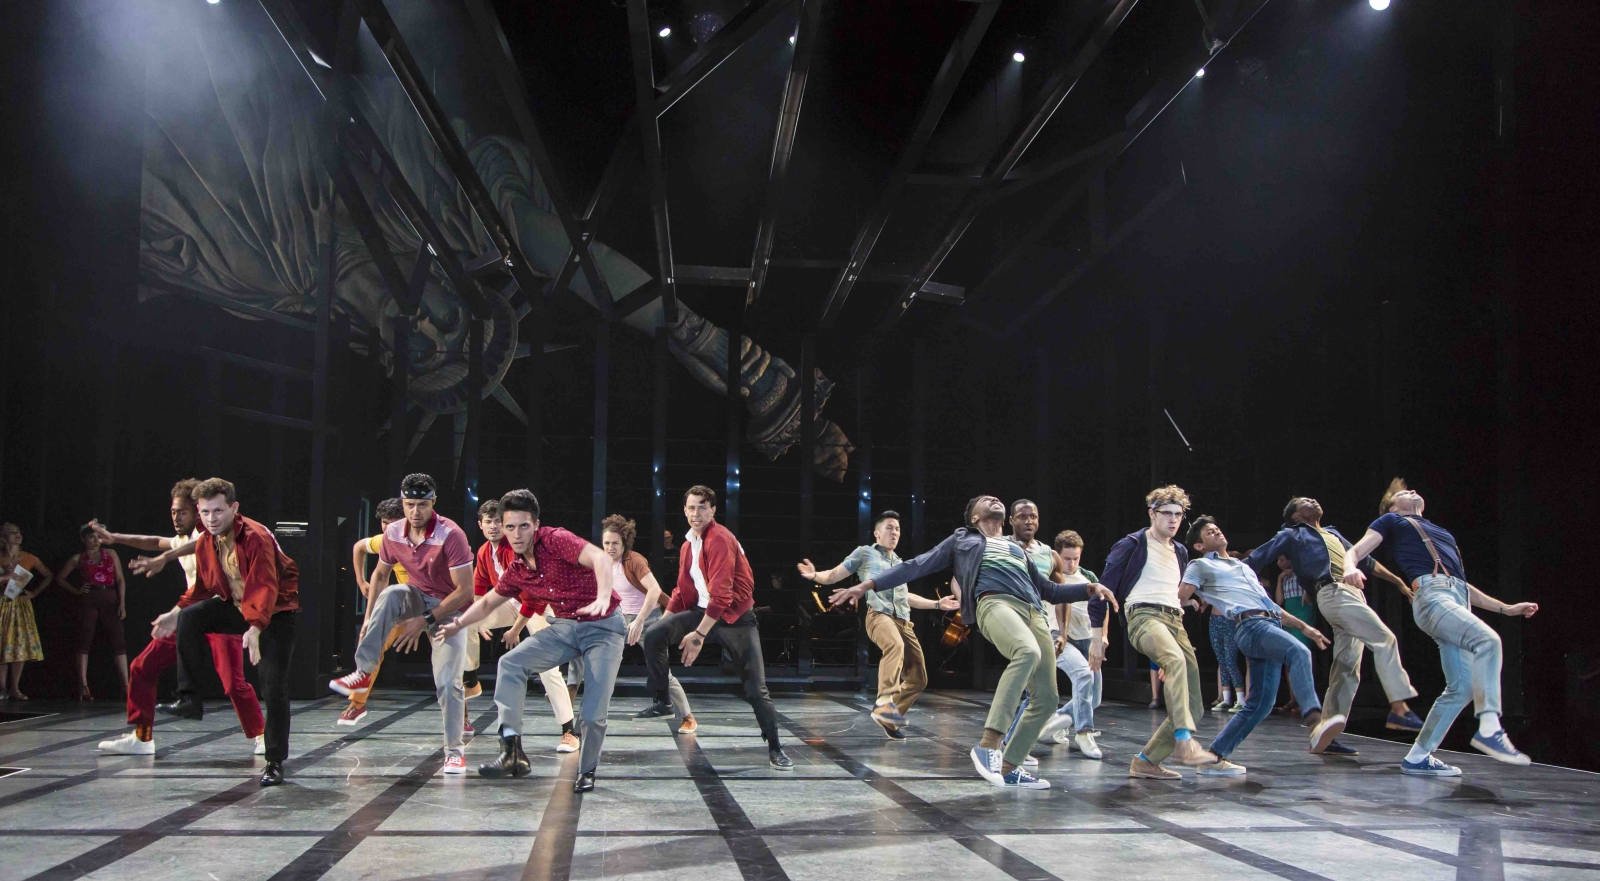 The cast of the Guthrie Theater's production of West Side Story, based on a conception of Jerome Robbins with a book by Arthur Laurents. Music by Leonard Bernstein, lyrics by Stephen Sondheim, directed by Joseph Haj. Scenic design by Christopher Acebo, costume design by Jen Caprio, lighting design by Bradley King, sound design by Elisheba Ittoop. June 16 — August 26, 2018 on the Wurtele Thrust Stage at the Guthrie Theater, Minneapolis. Photo by T Charles Erickson.